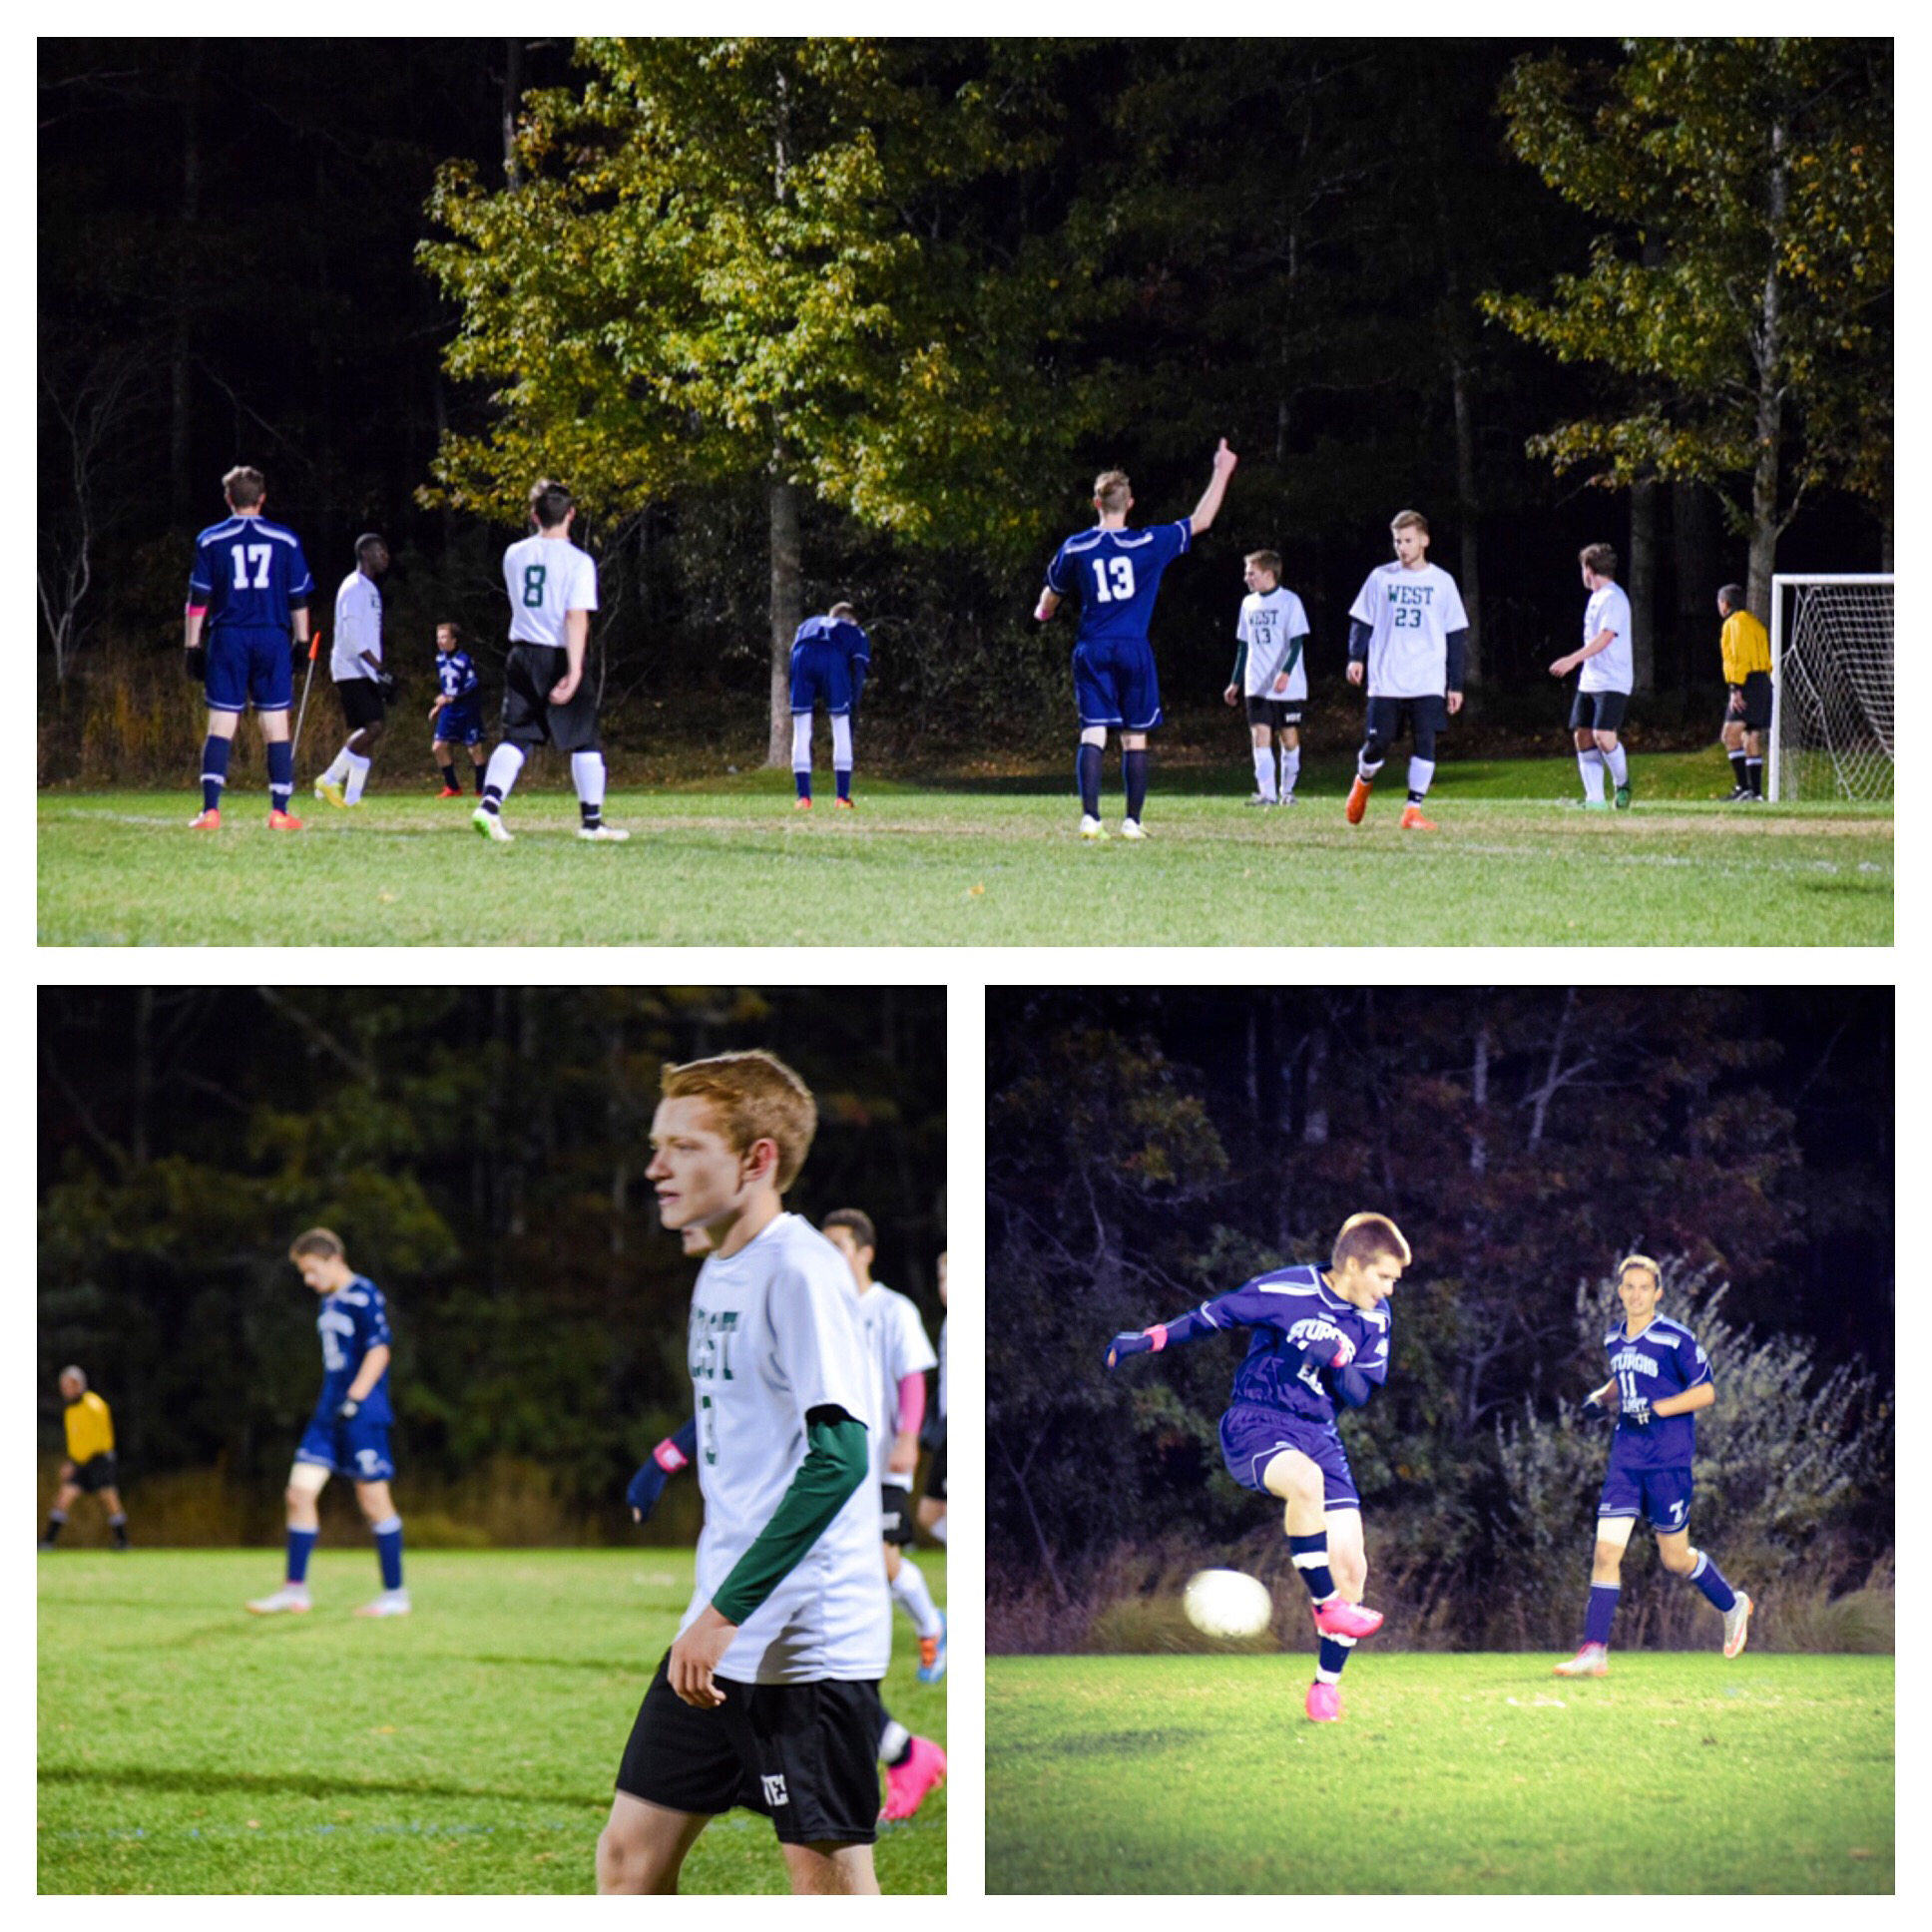 Boys Homecoming Soccer Game 2015